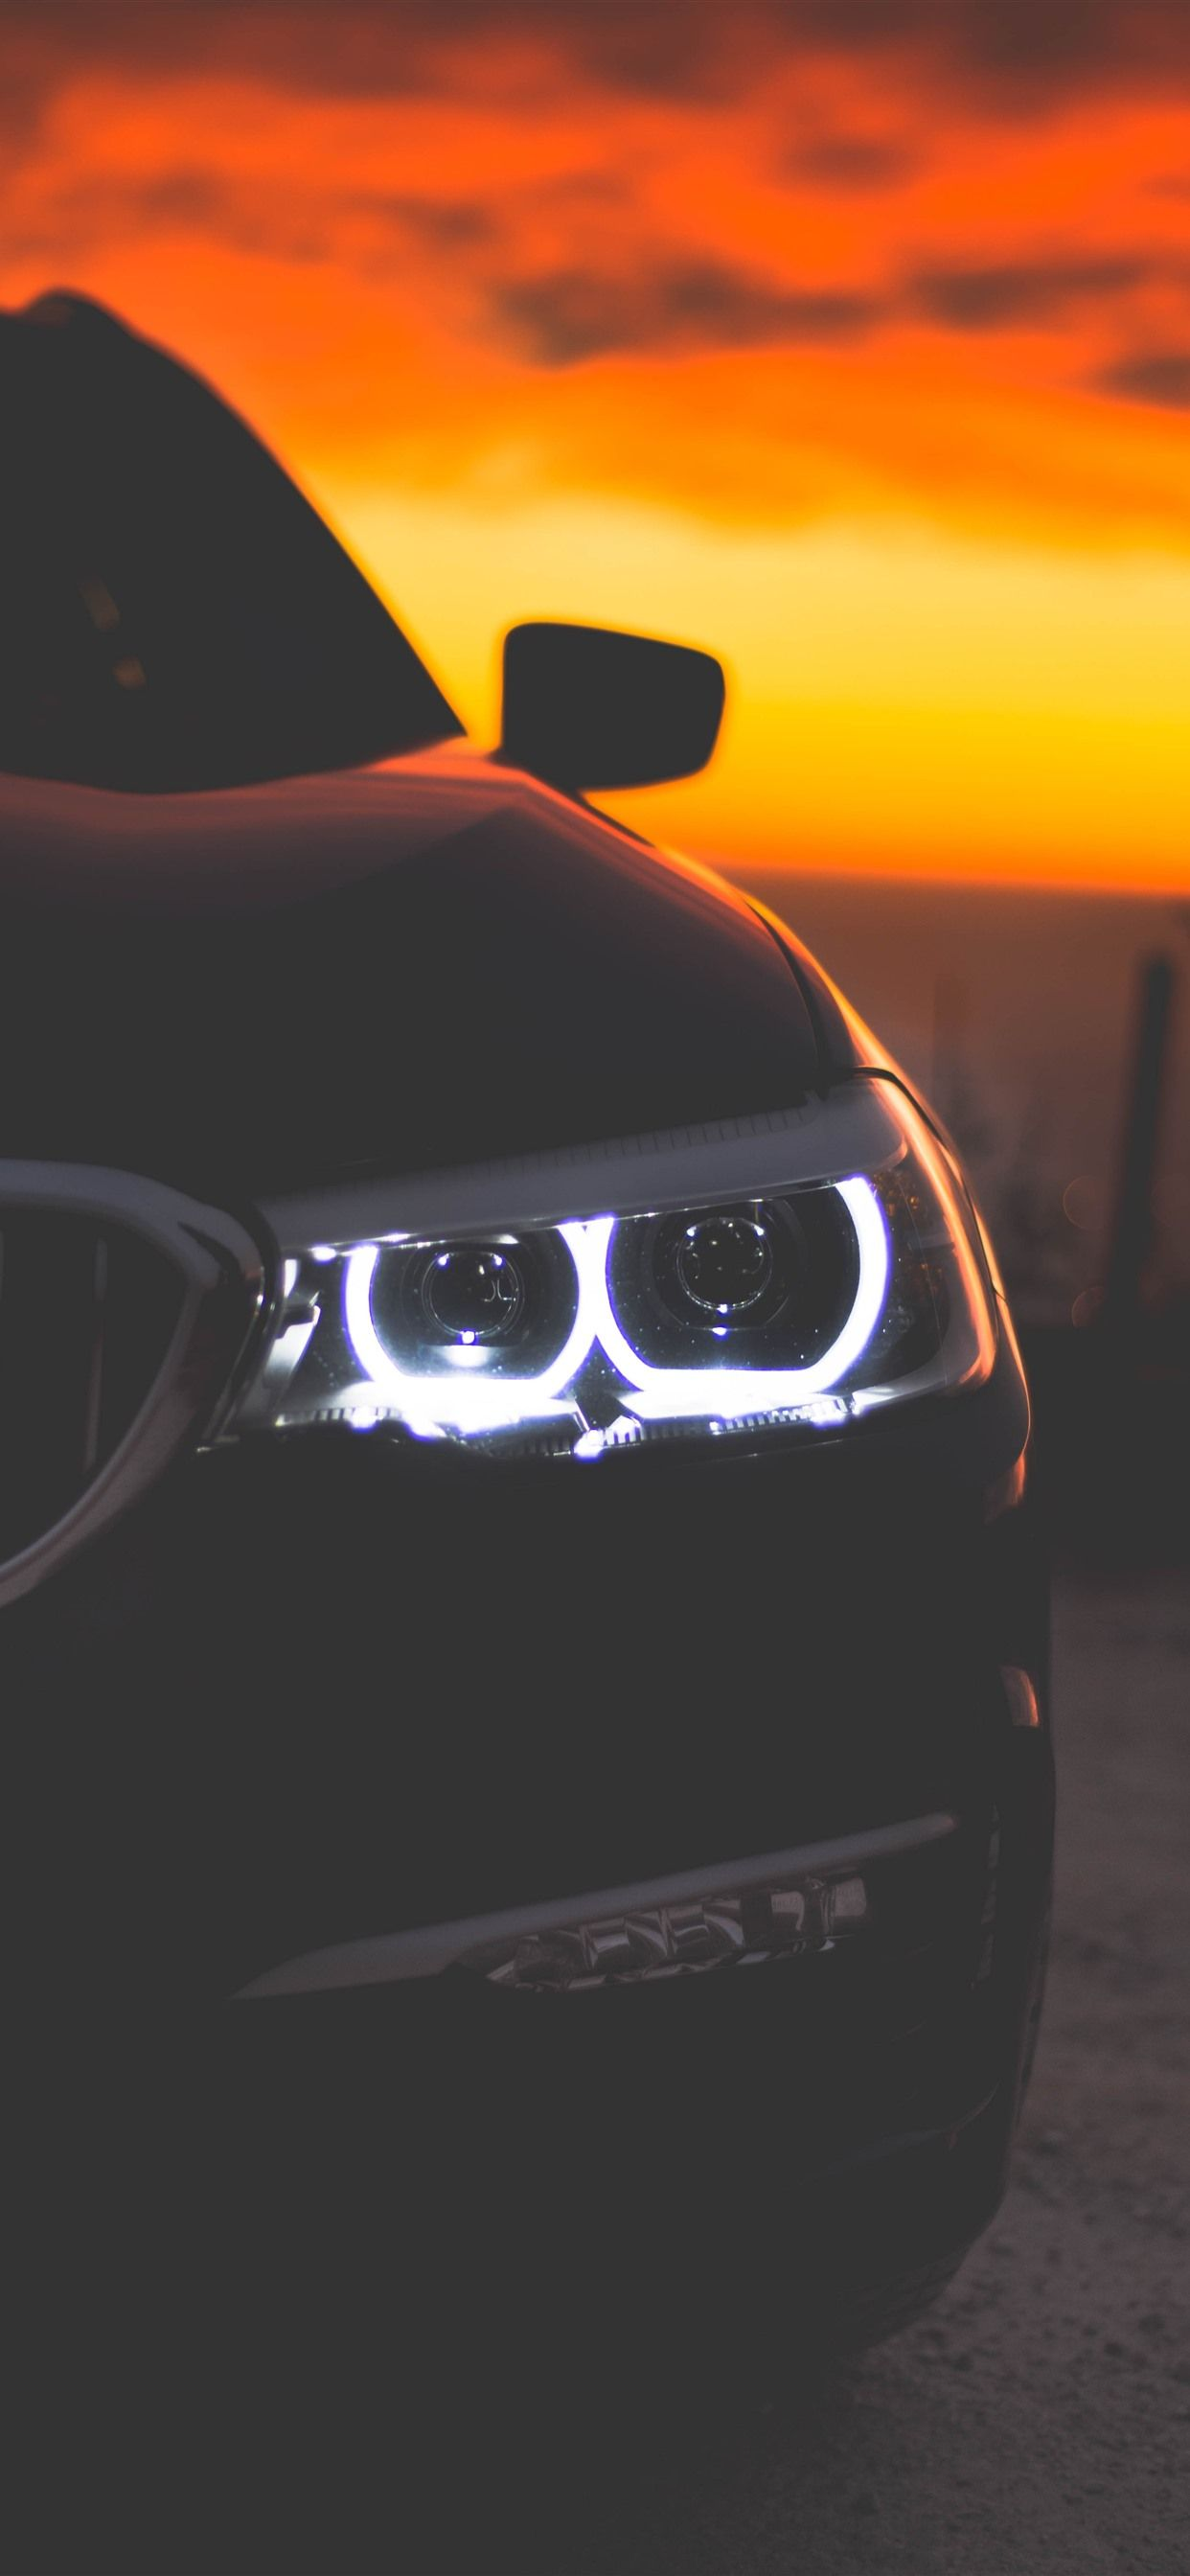 4k For Iphone Car Wallpapers Wallpaper Cave